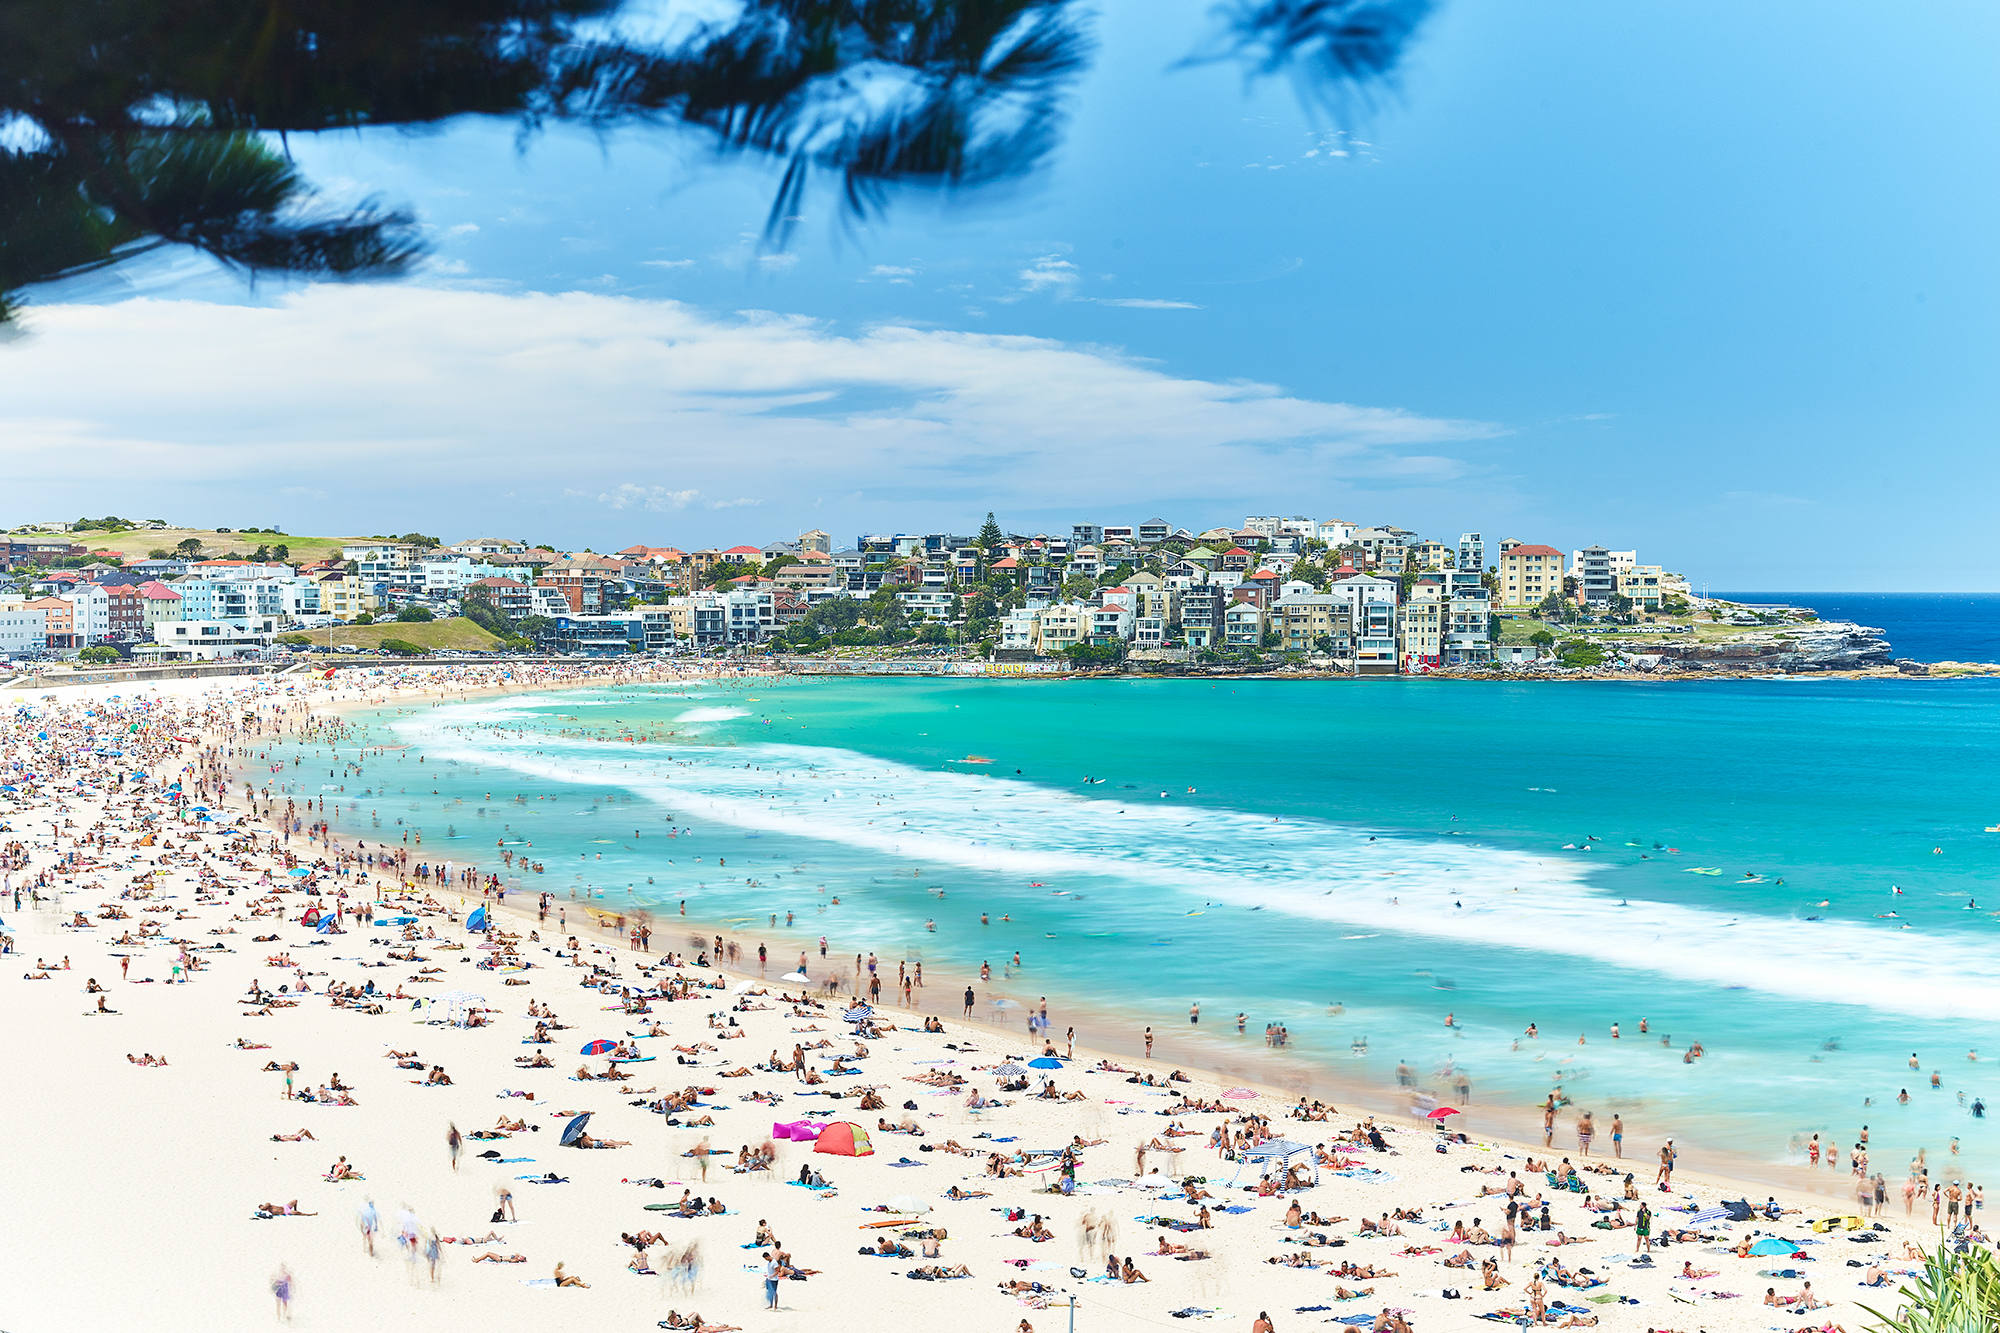 Just a reminded what Bondi looks like in good weather